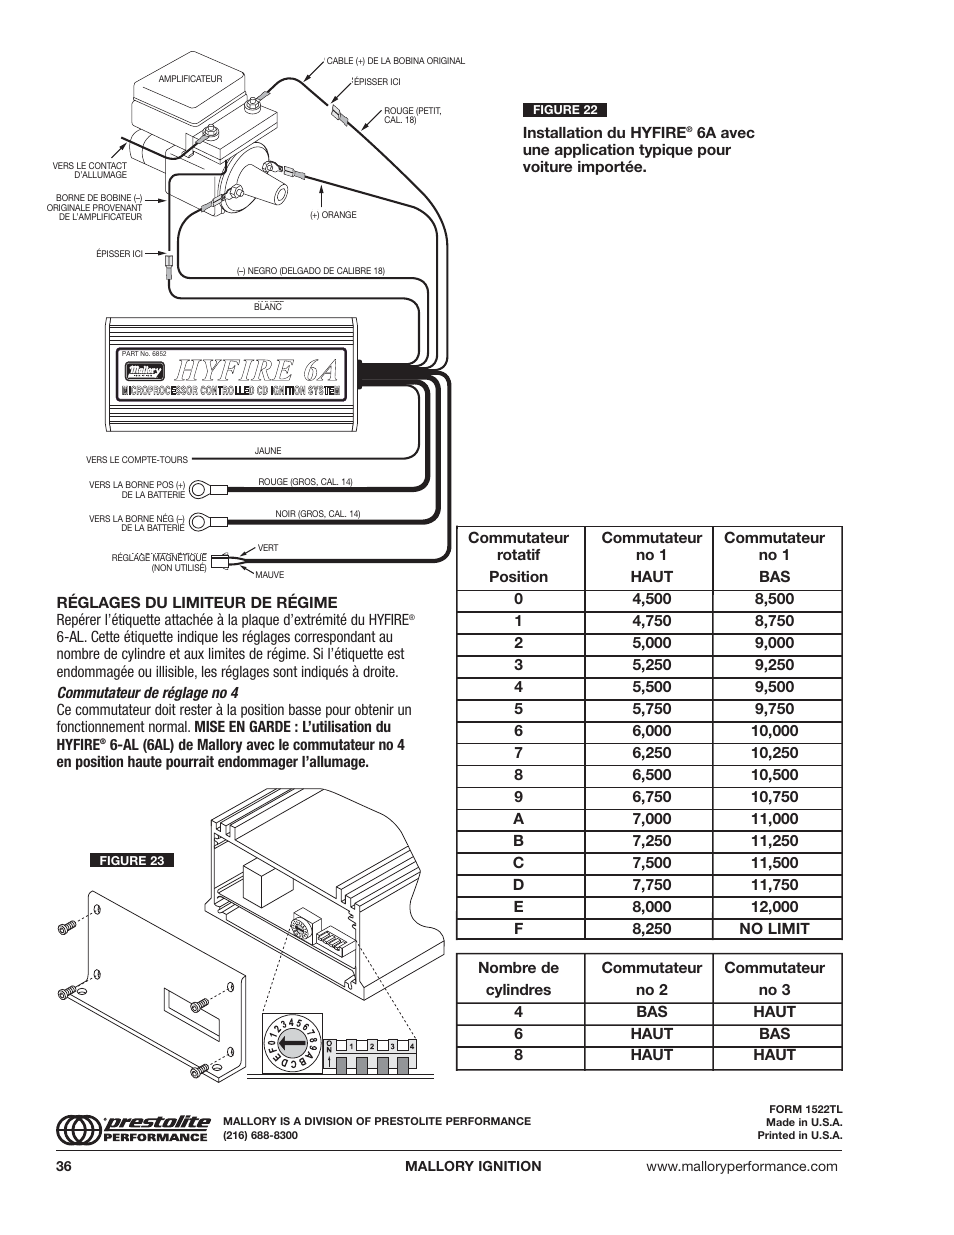 Mallory Hyfire Wiring Diagram | Wiring Diagram Liry on mallory hyfire wiring diagram for 6, dynatek ignition wiring diagram, crane ignition wiring diagram, msd ignition wiring diagram, ford ignition wiring diagram, jacobs ignition wiring diagram, distributor ignition wiring diagram,